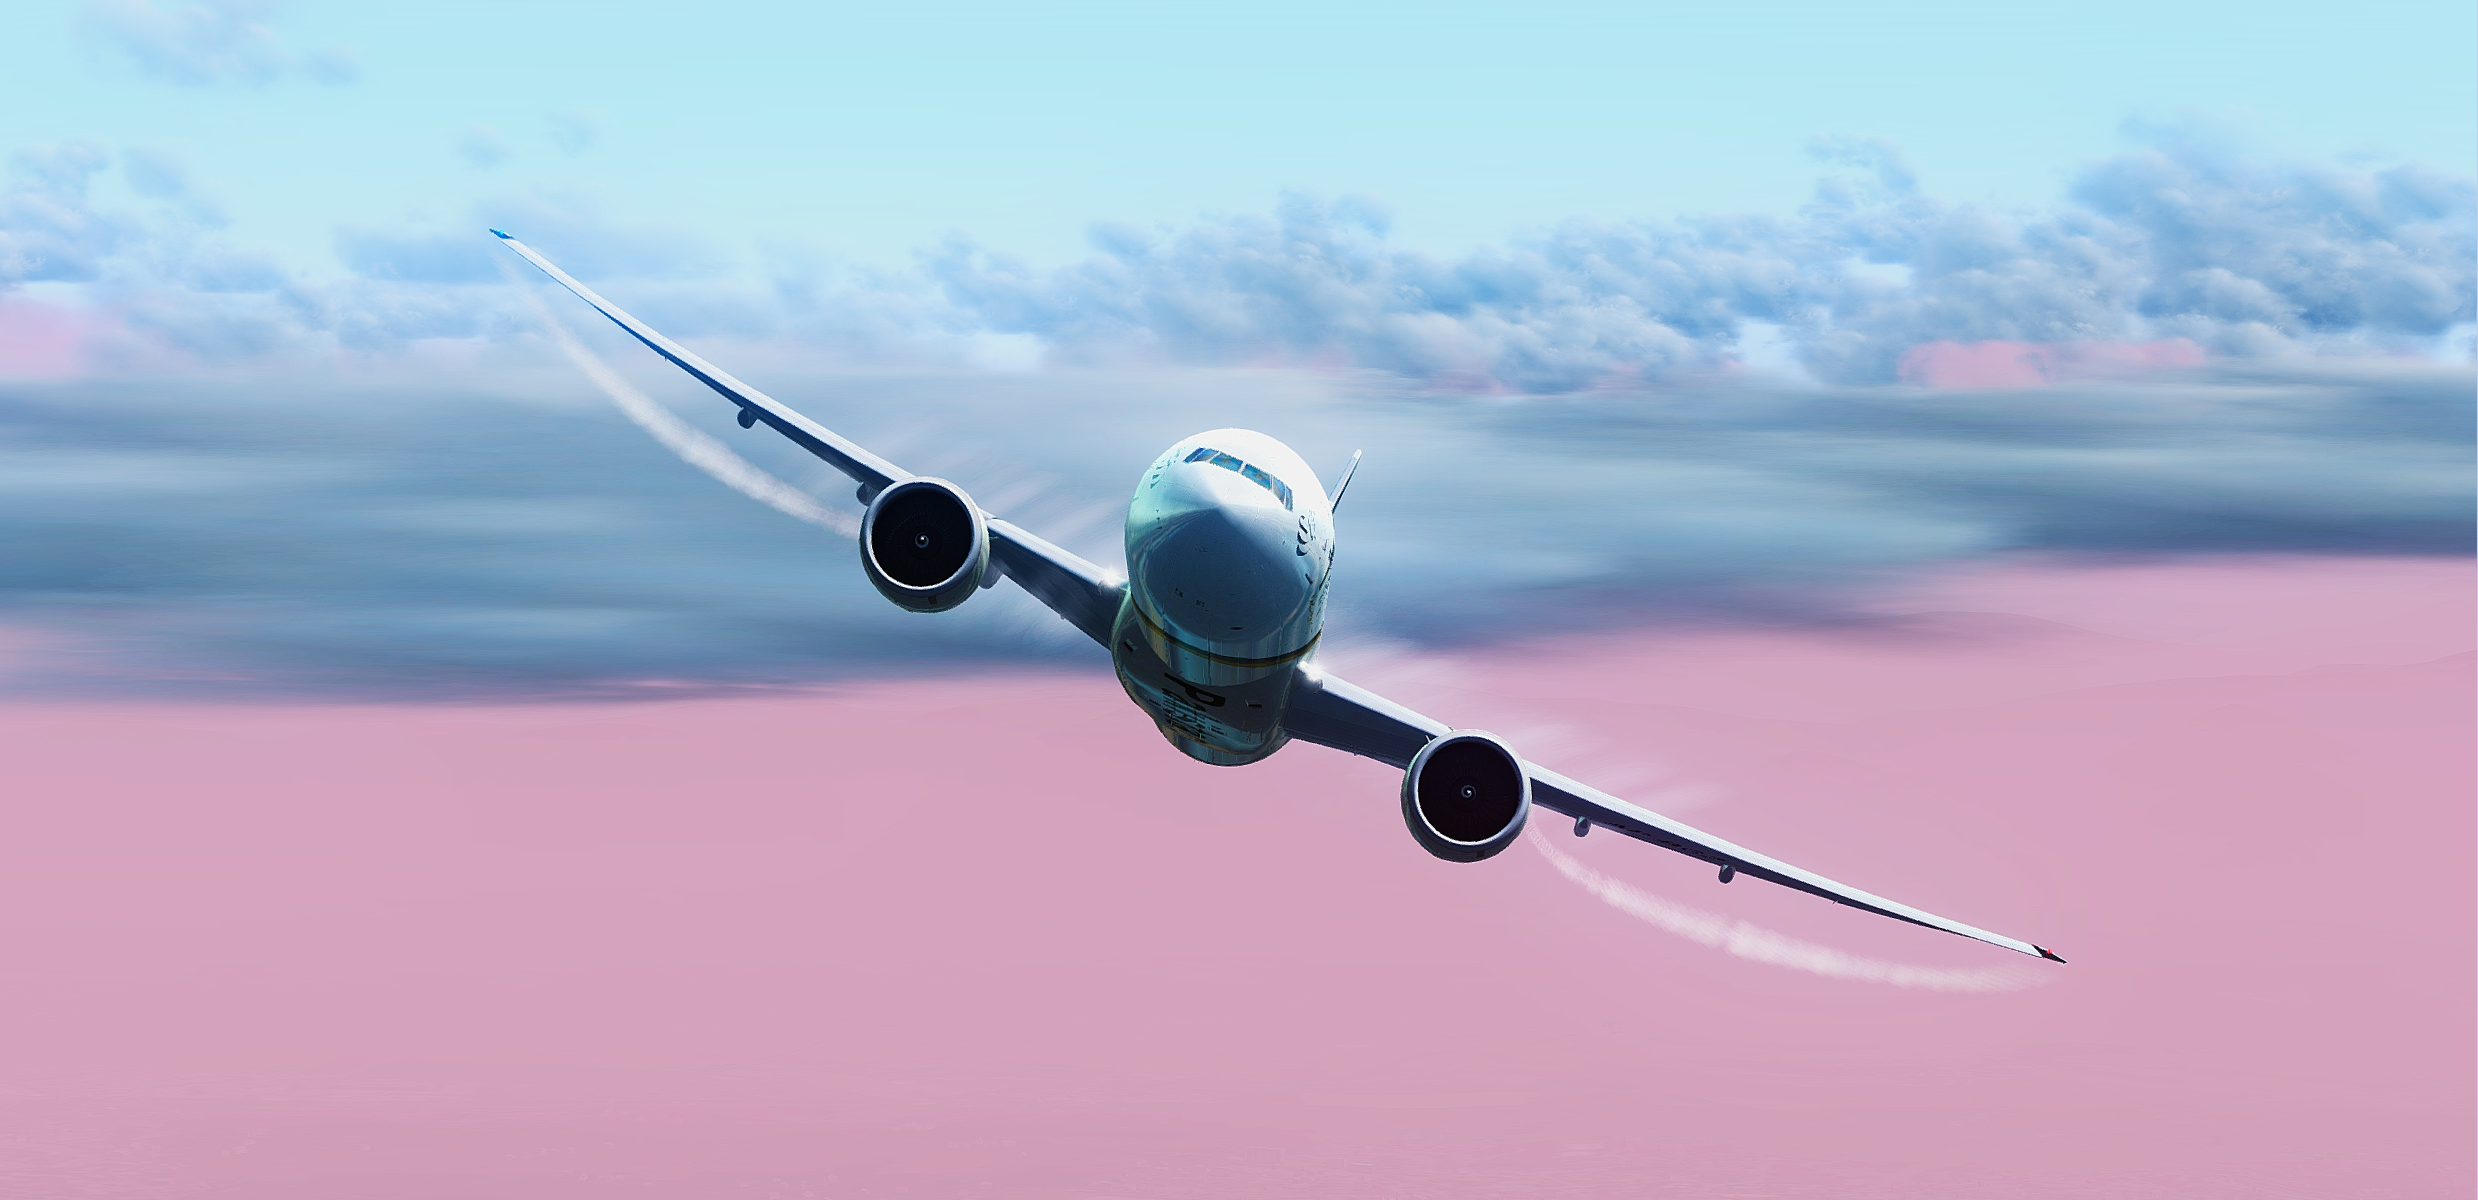 fsx%202015-07-05%2014-03-39-138.png?dl=0